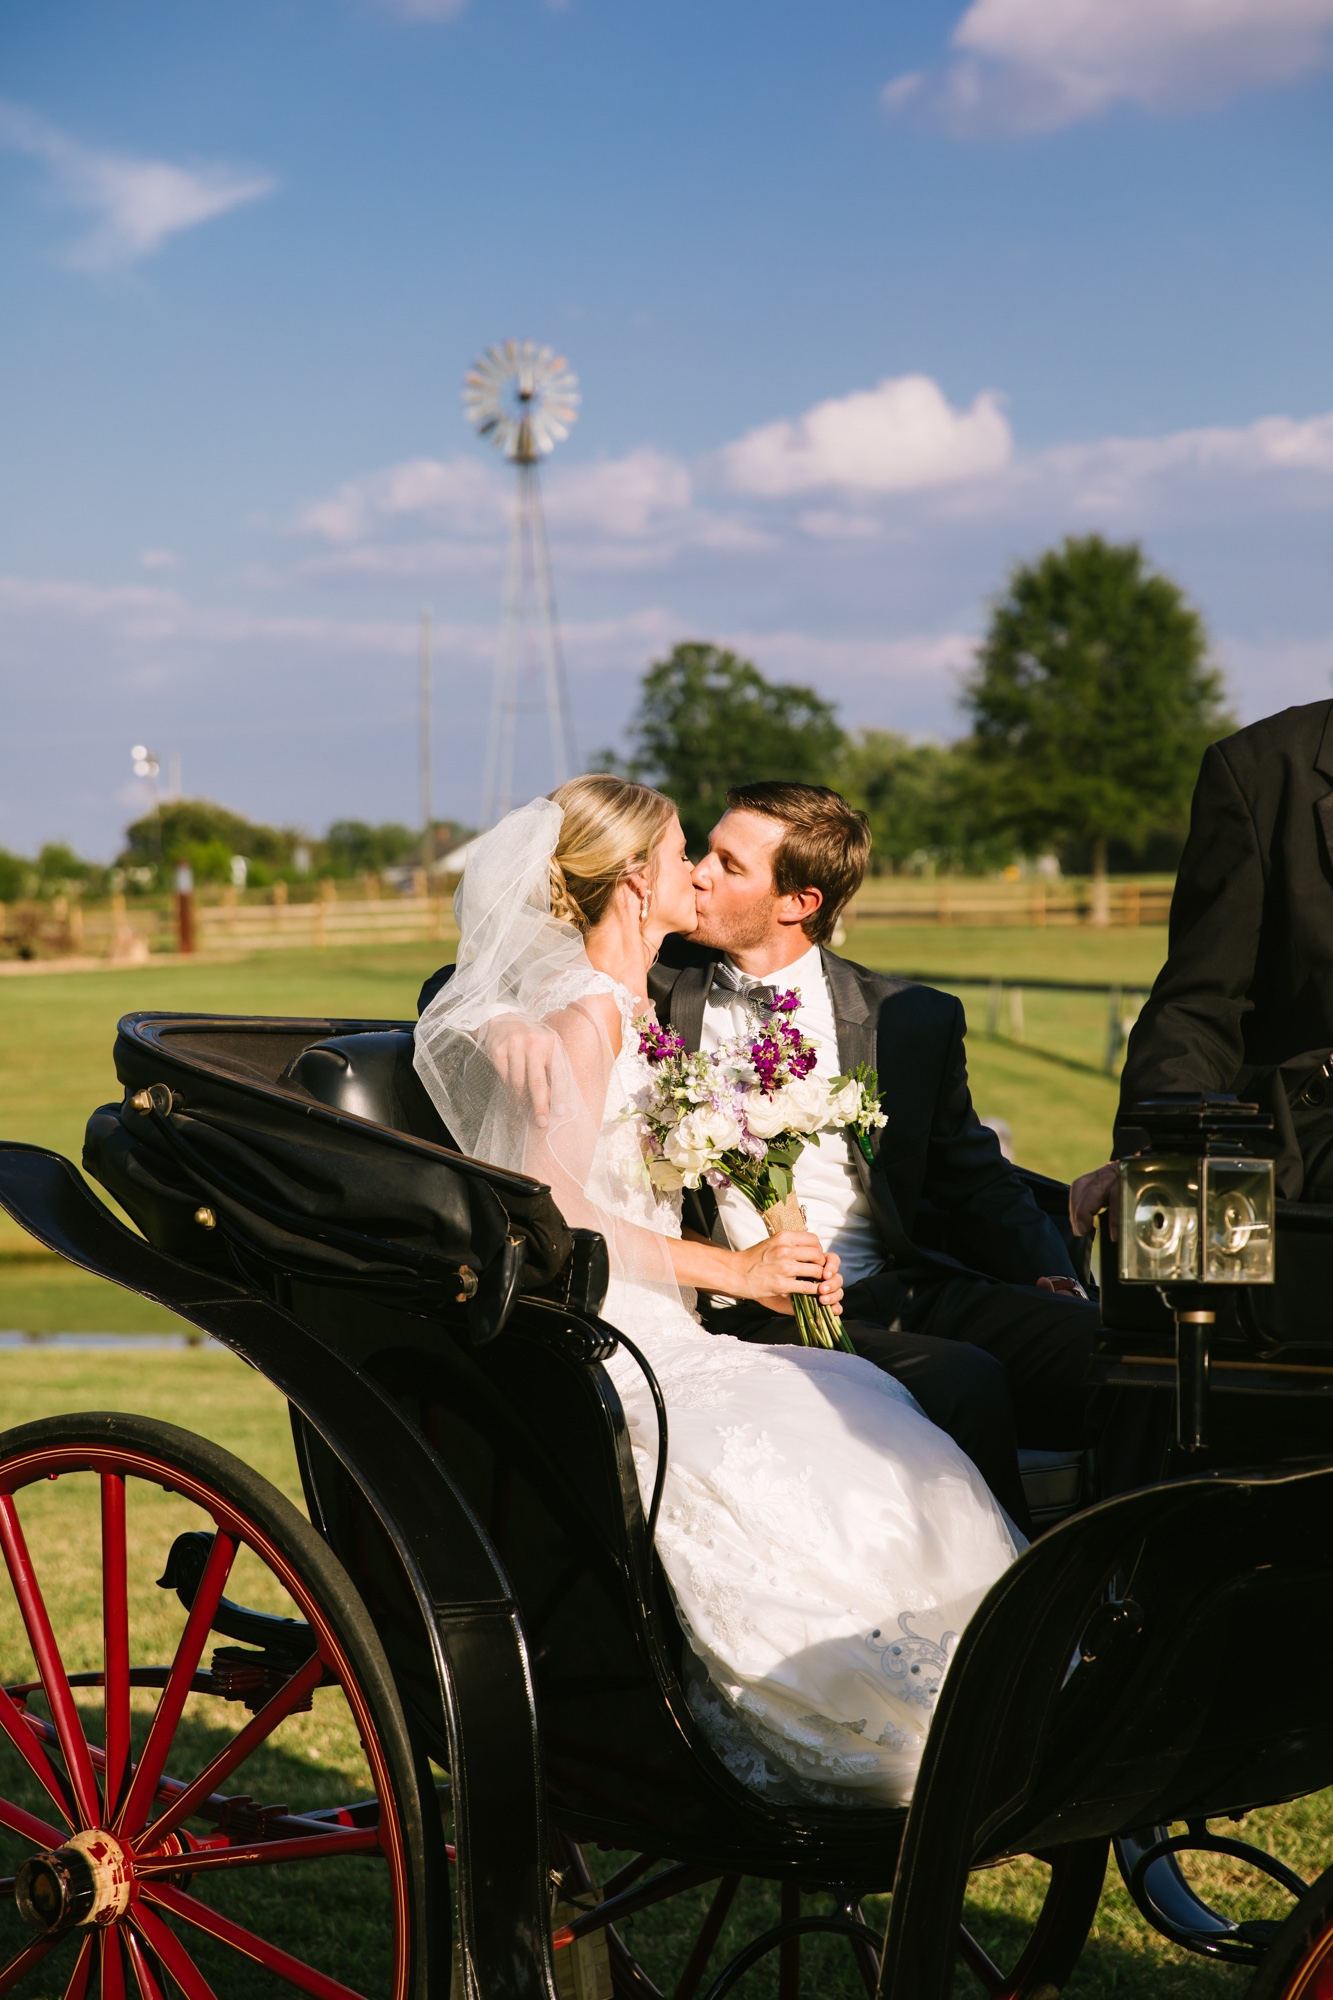 Waynesville, NC Wedding Photography | Bride and Groom Kissing in Horse Carriage